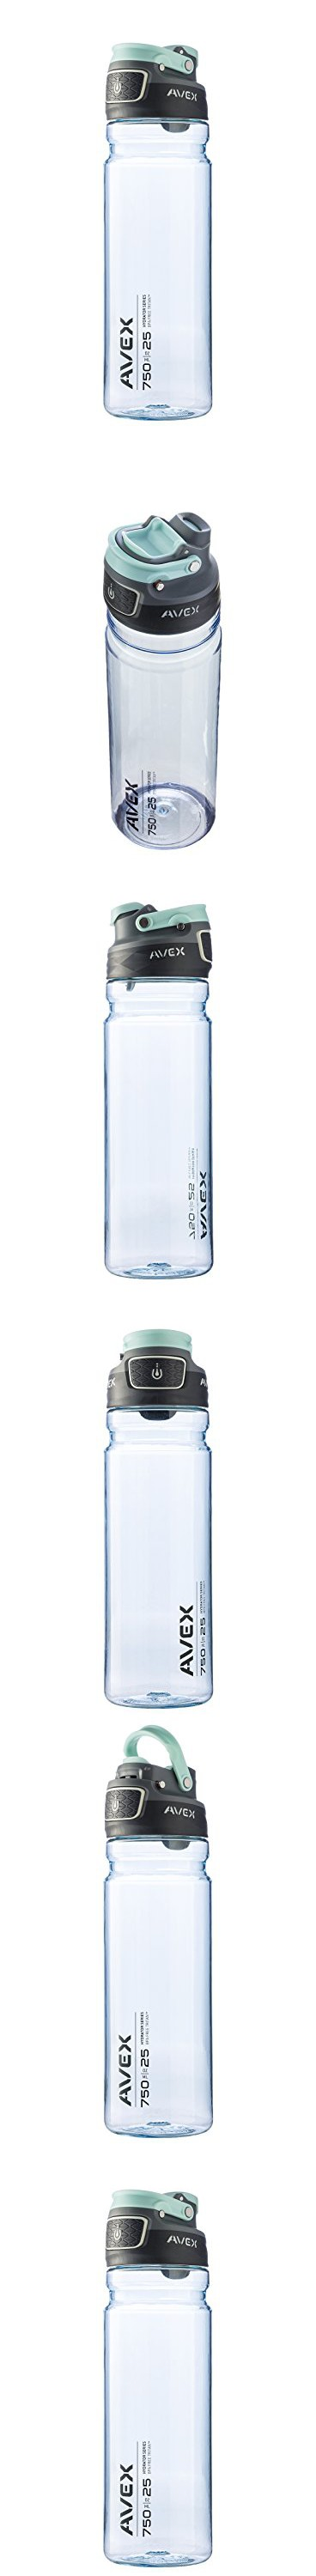 f8ab959fb6 AVEX FreeFlow Autoseal Water Bottle, Ice, 750ml/25 oz | Pinterest ...